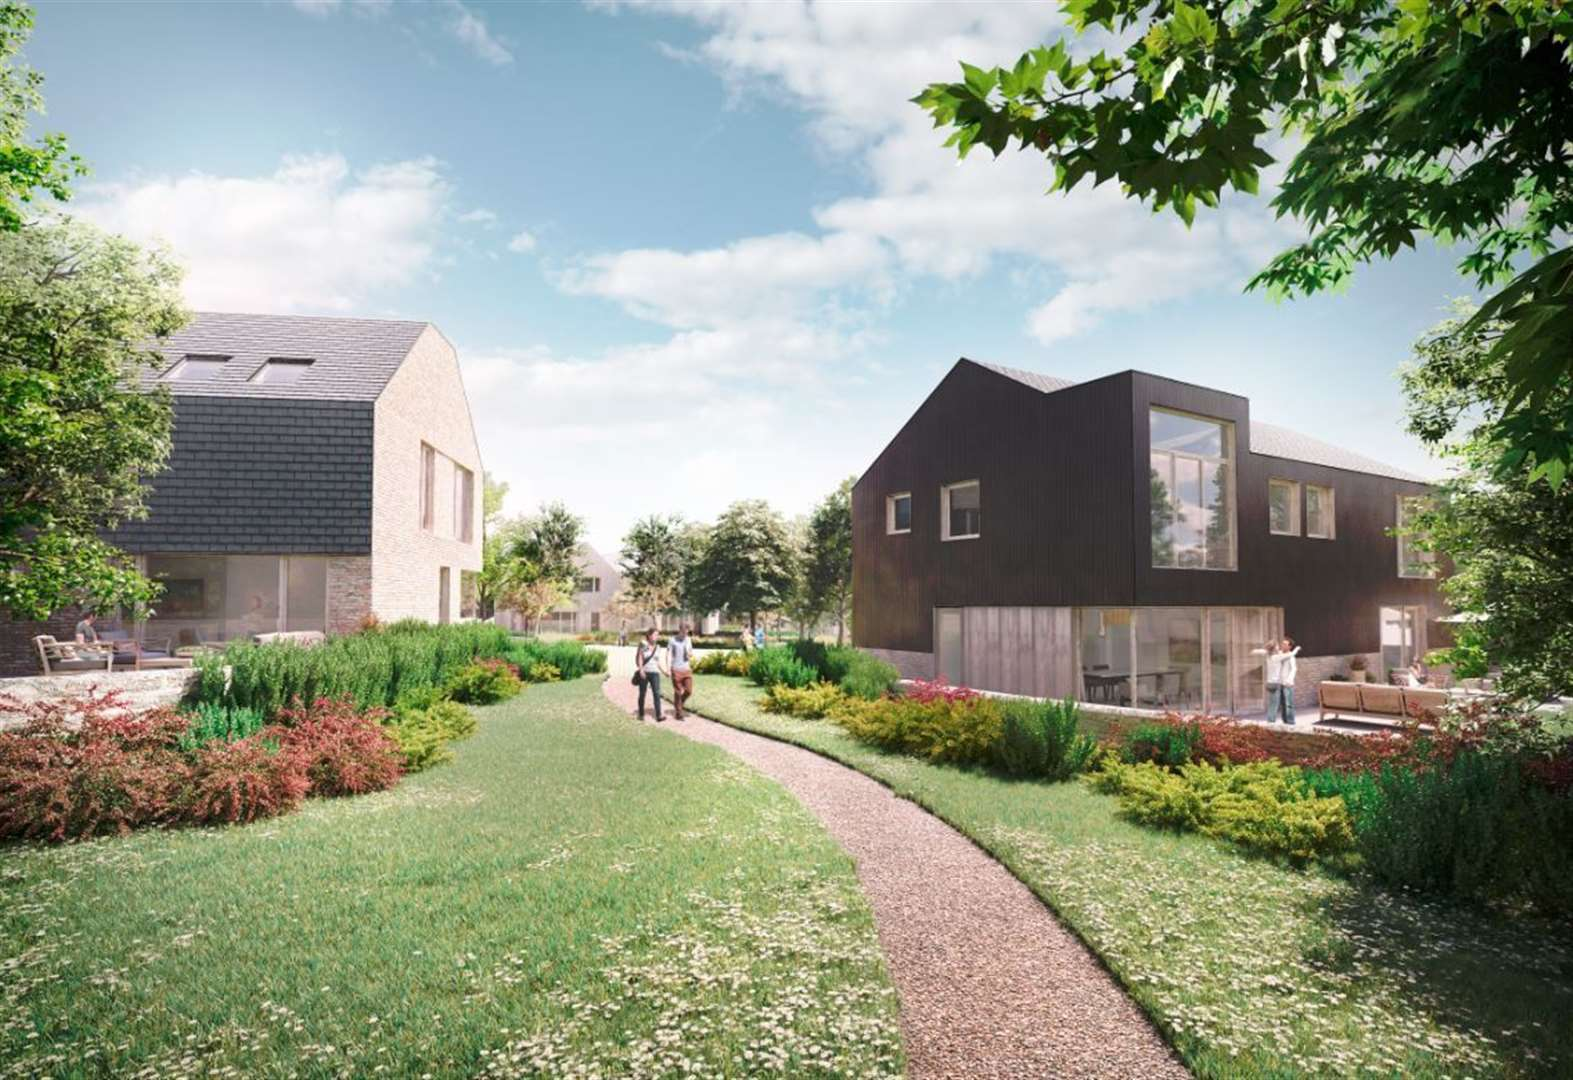 Work on homes with 'eco designs' starts